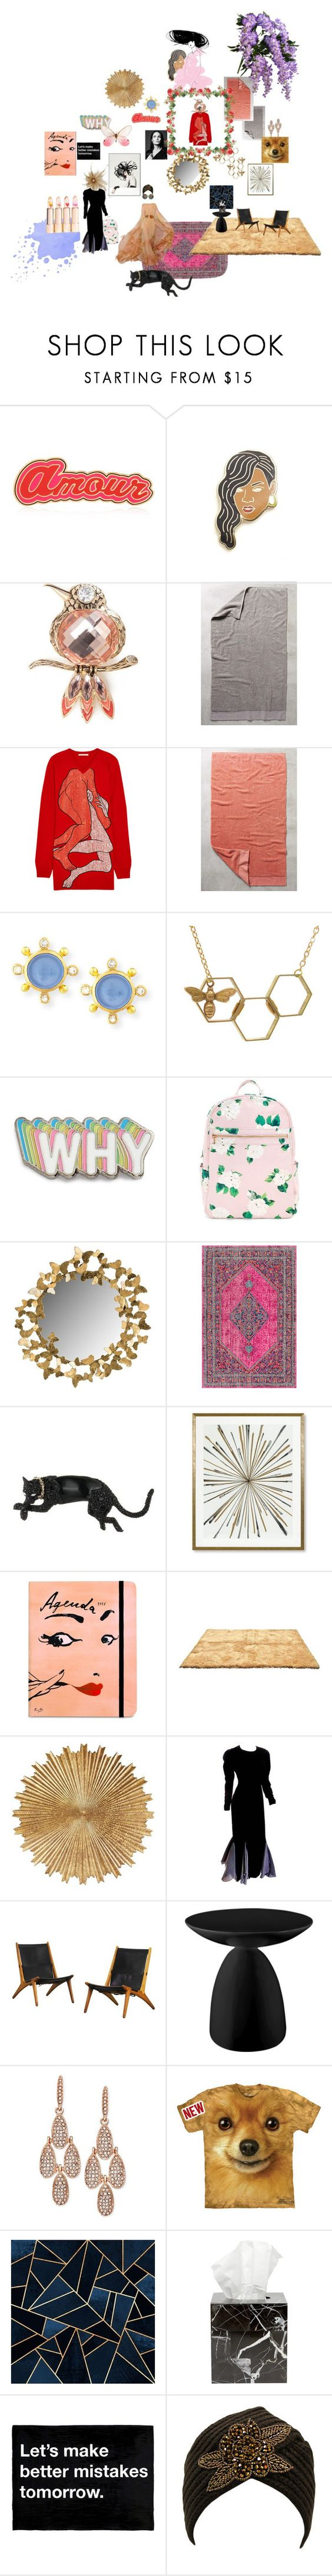 """""""welcome to the house of wisteria..Le foyer..."""" by tessjr on Polyvore featuring interior, interiors, interior design, home, home decor, interior decorating, Maria Francesca Pepe, Georgia Perry, Napier and Anthropologie"""